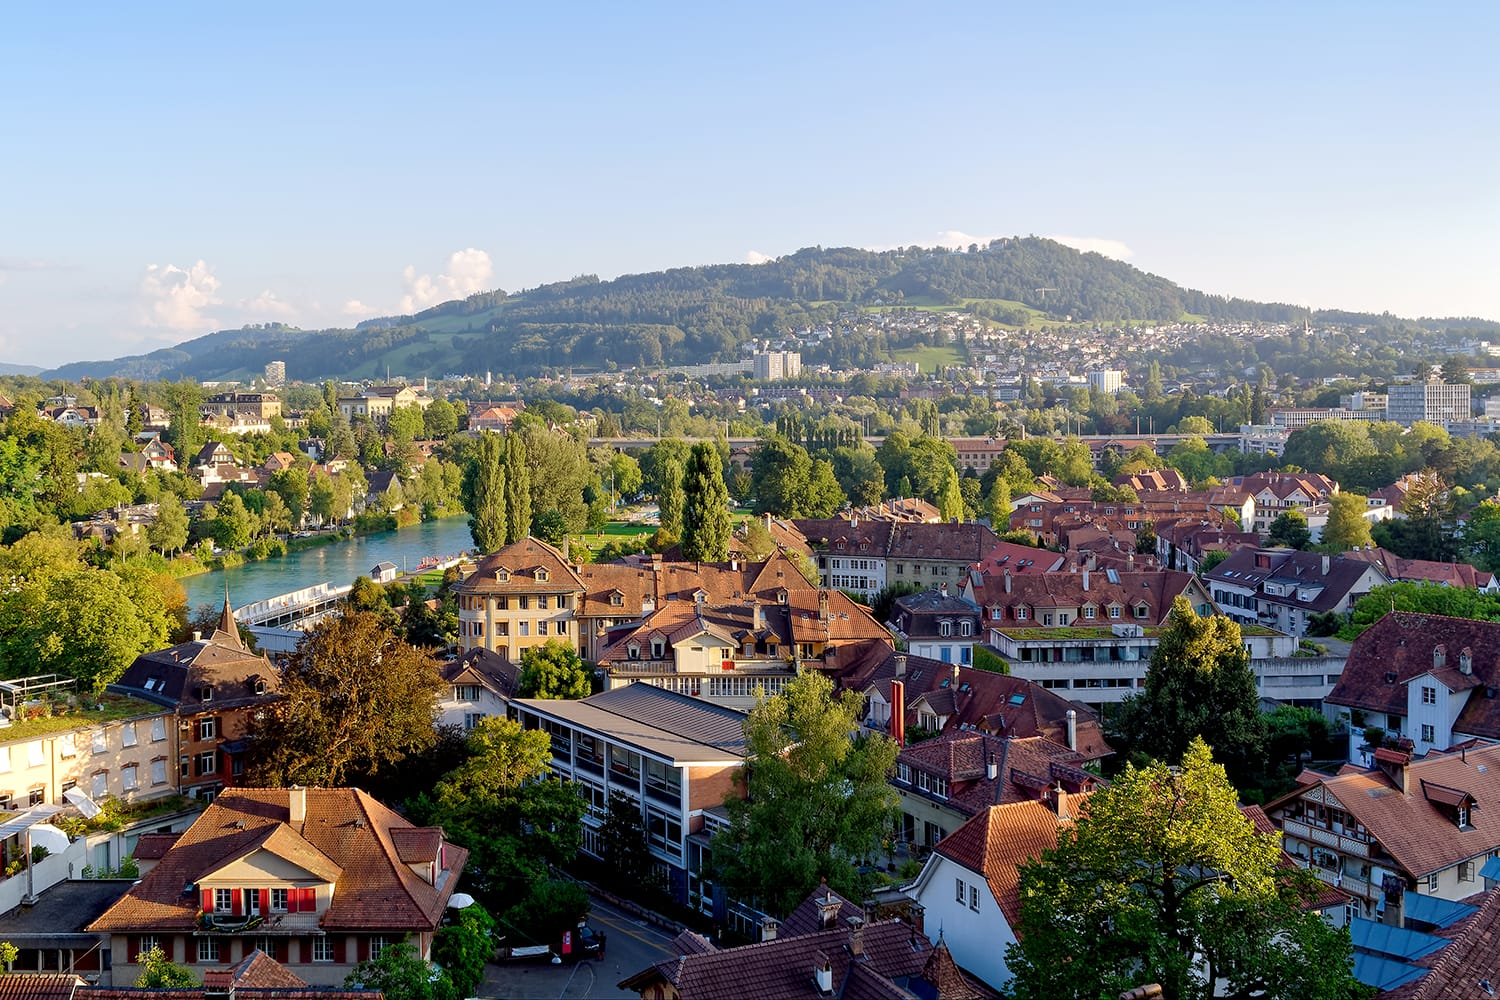 View of mountain Gurten from Bern, Switzerland, in sunny afternoon.